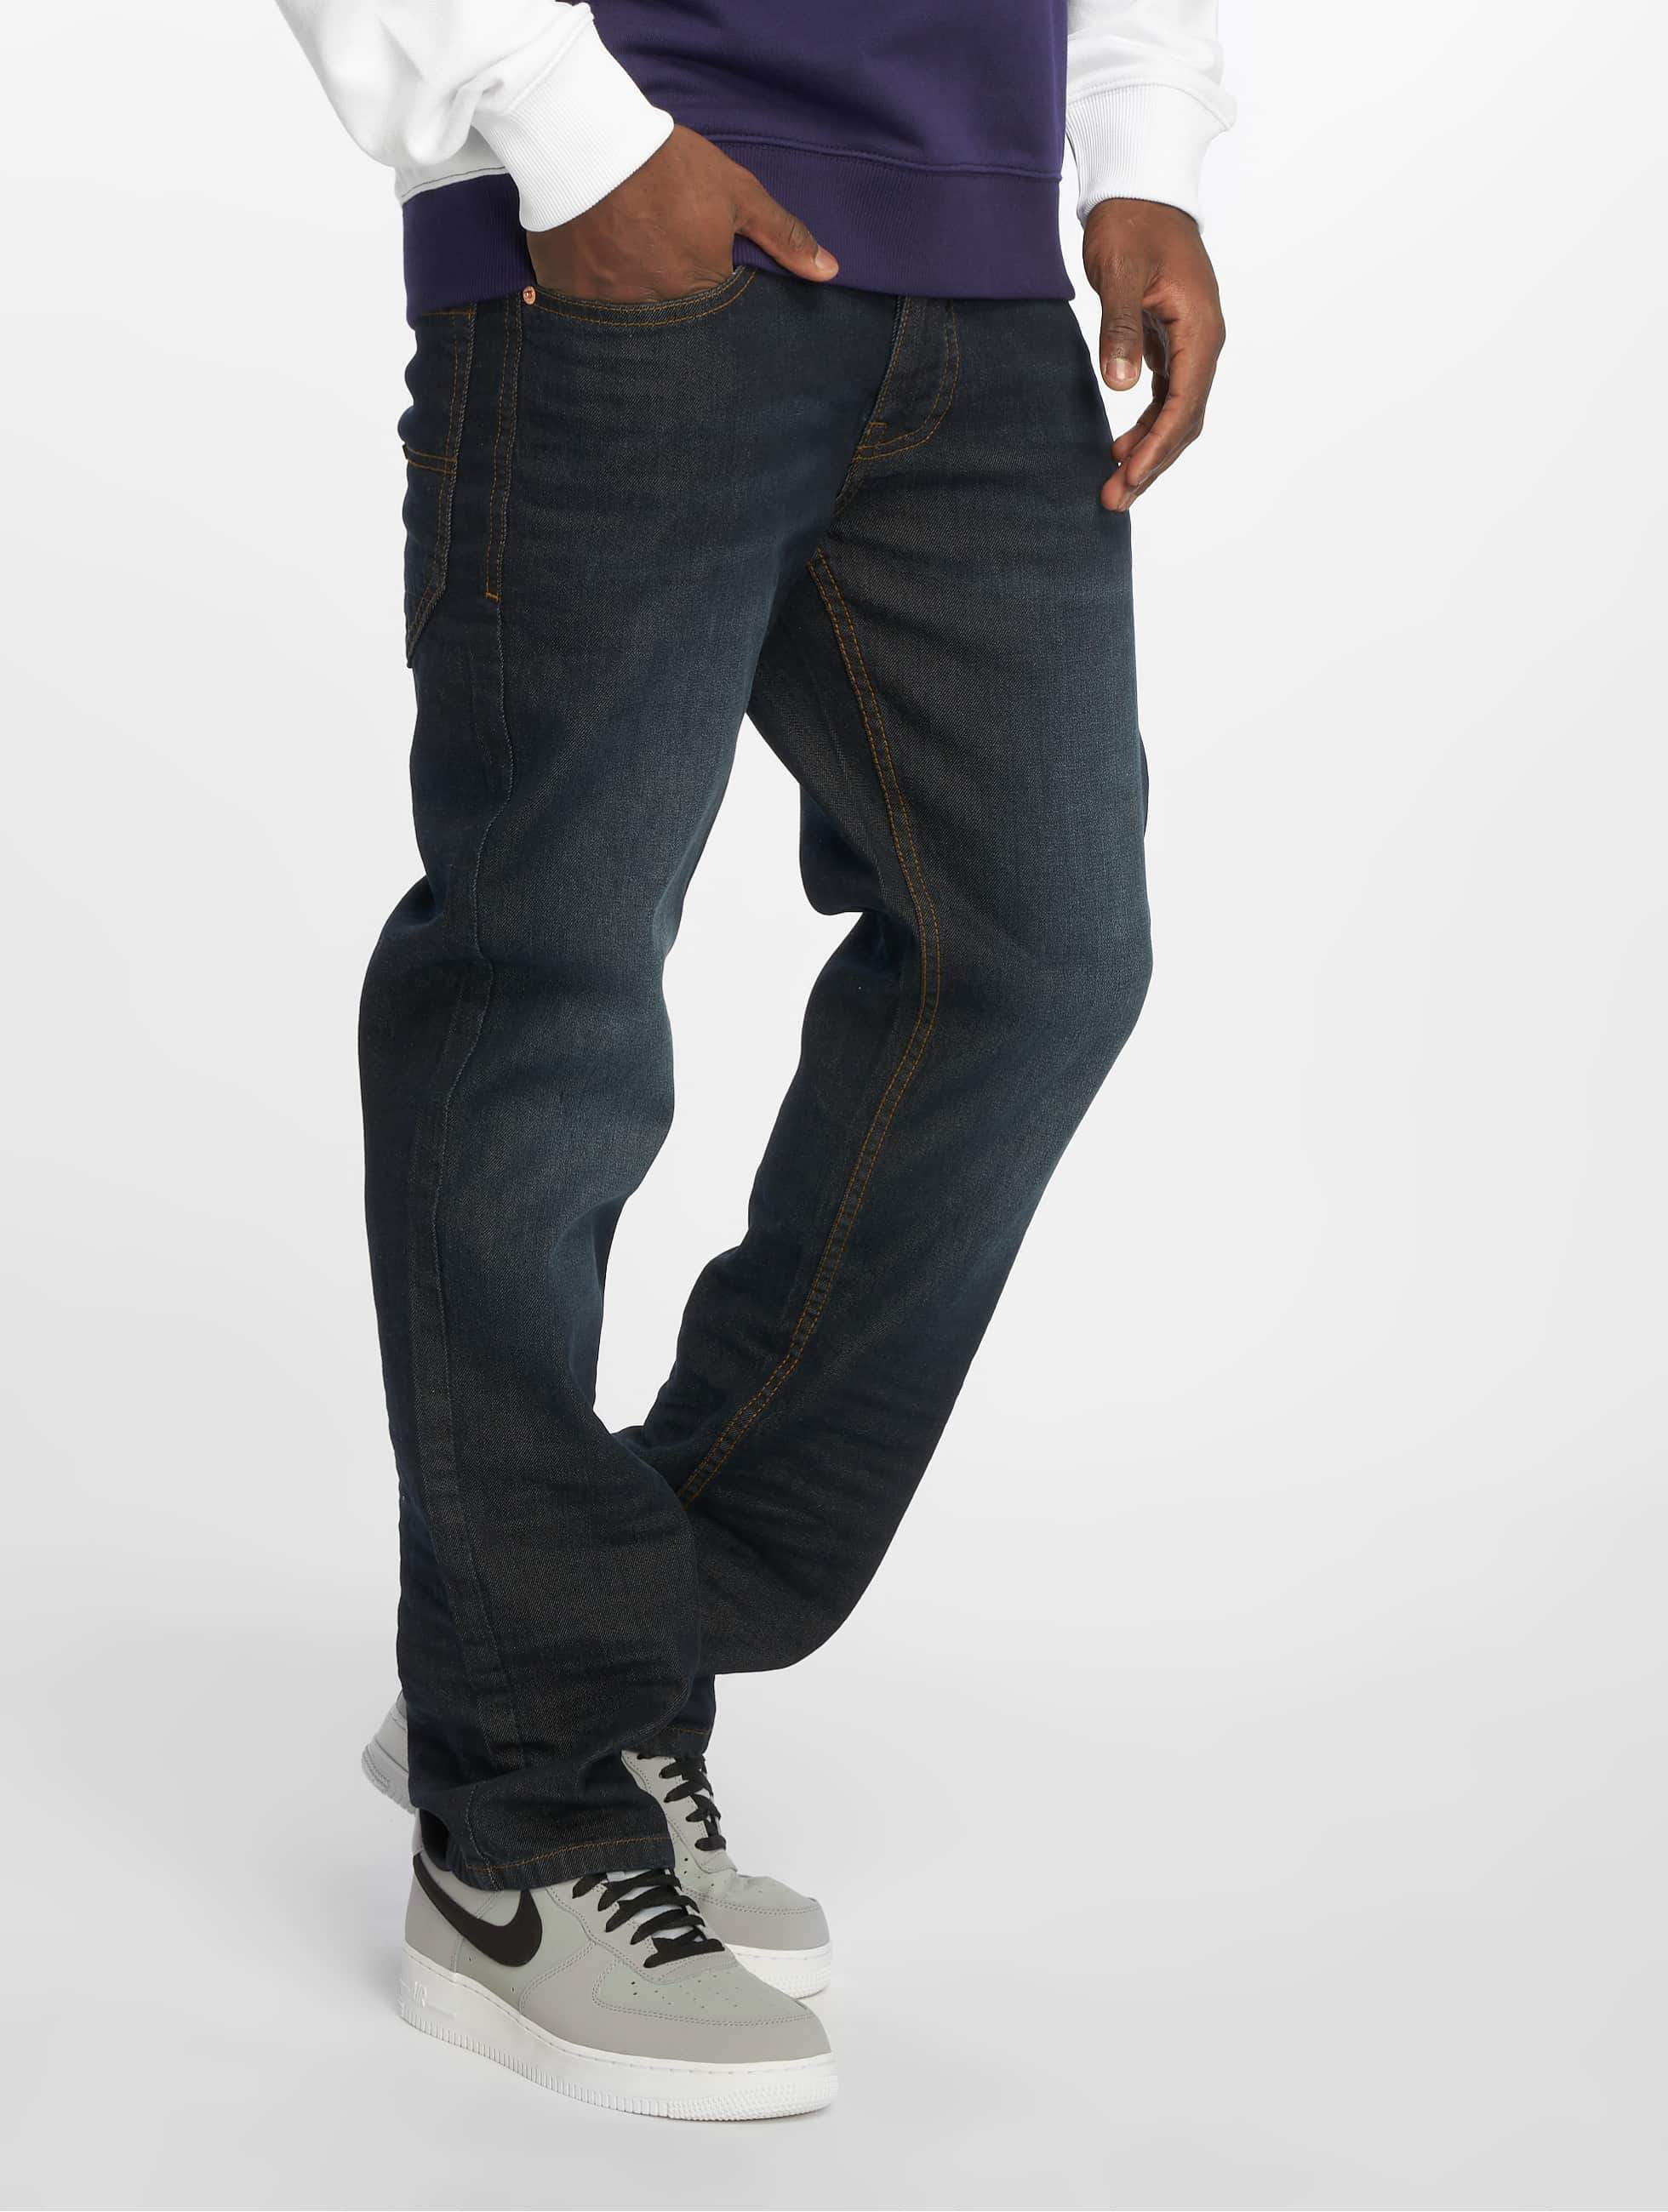 Rocawear / Straight Fit Jeans TUE Relax Fit in blue W 33 L 34